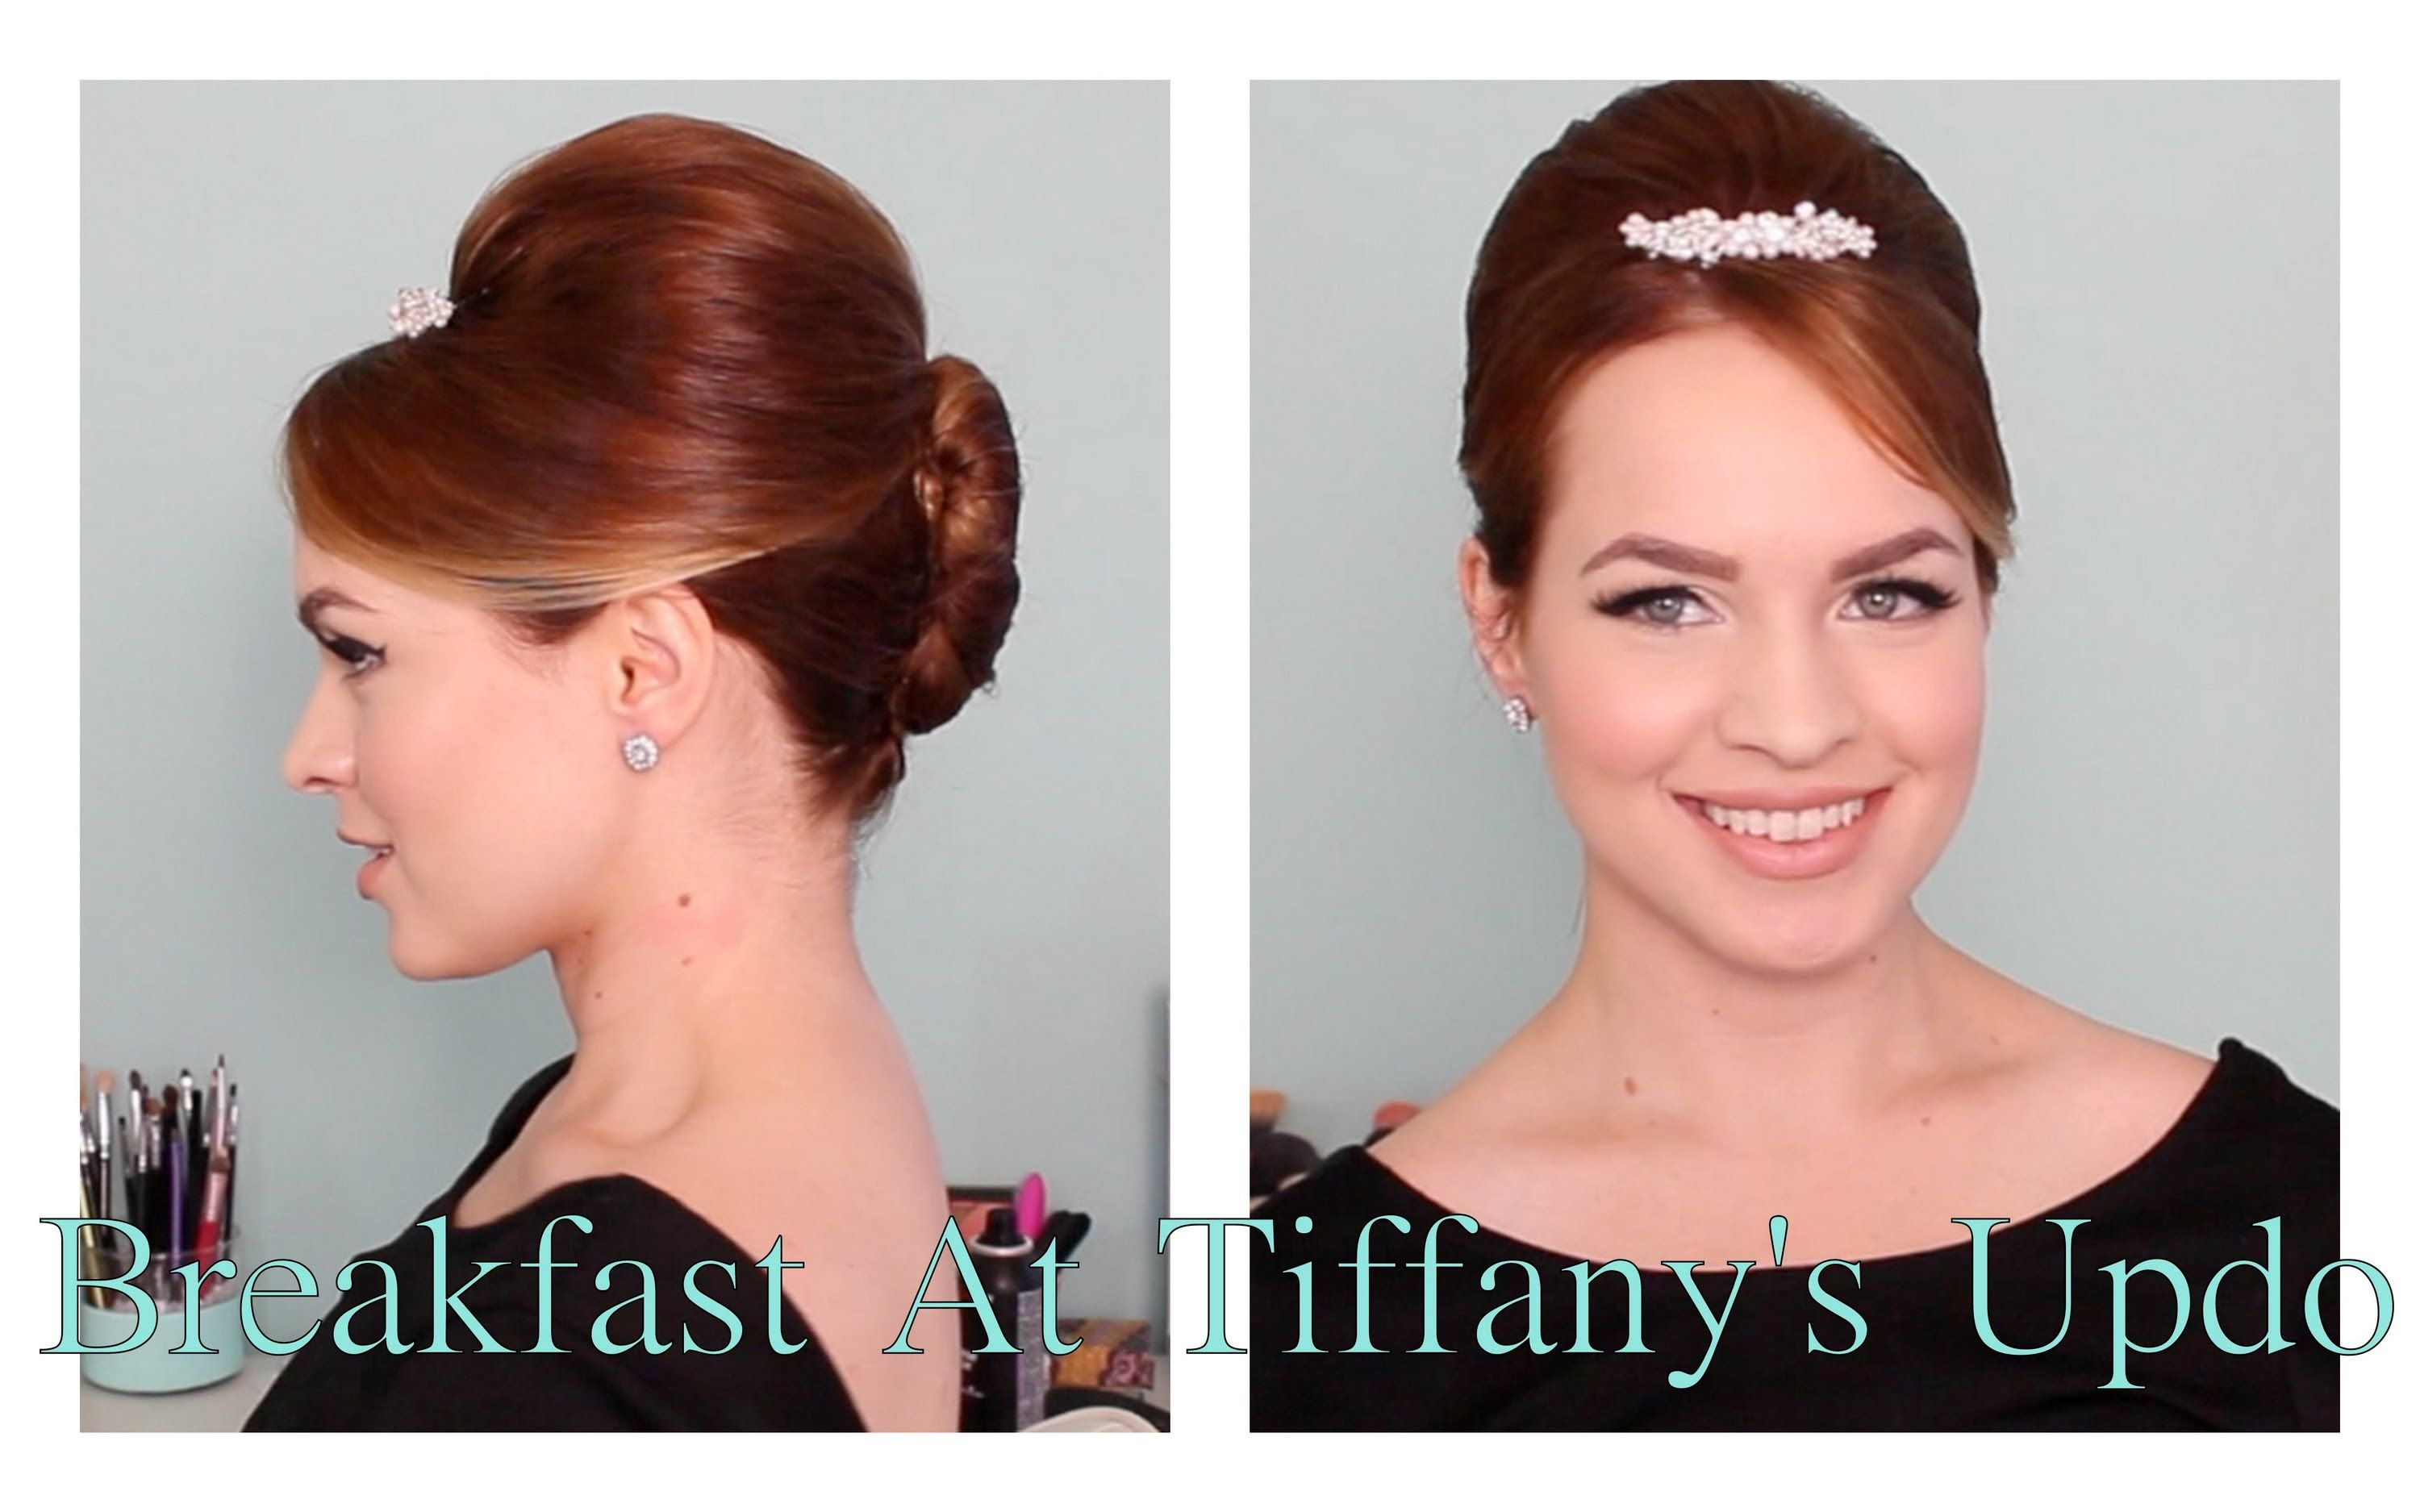 Audrey Hepburn In Breakfast At Tiffanys Updo Really Easy And Pretty